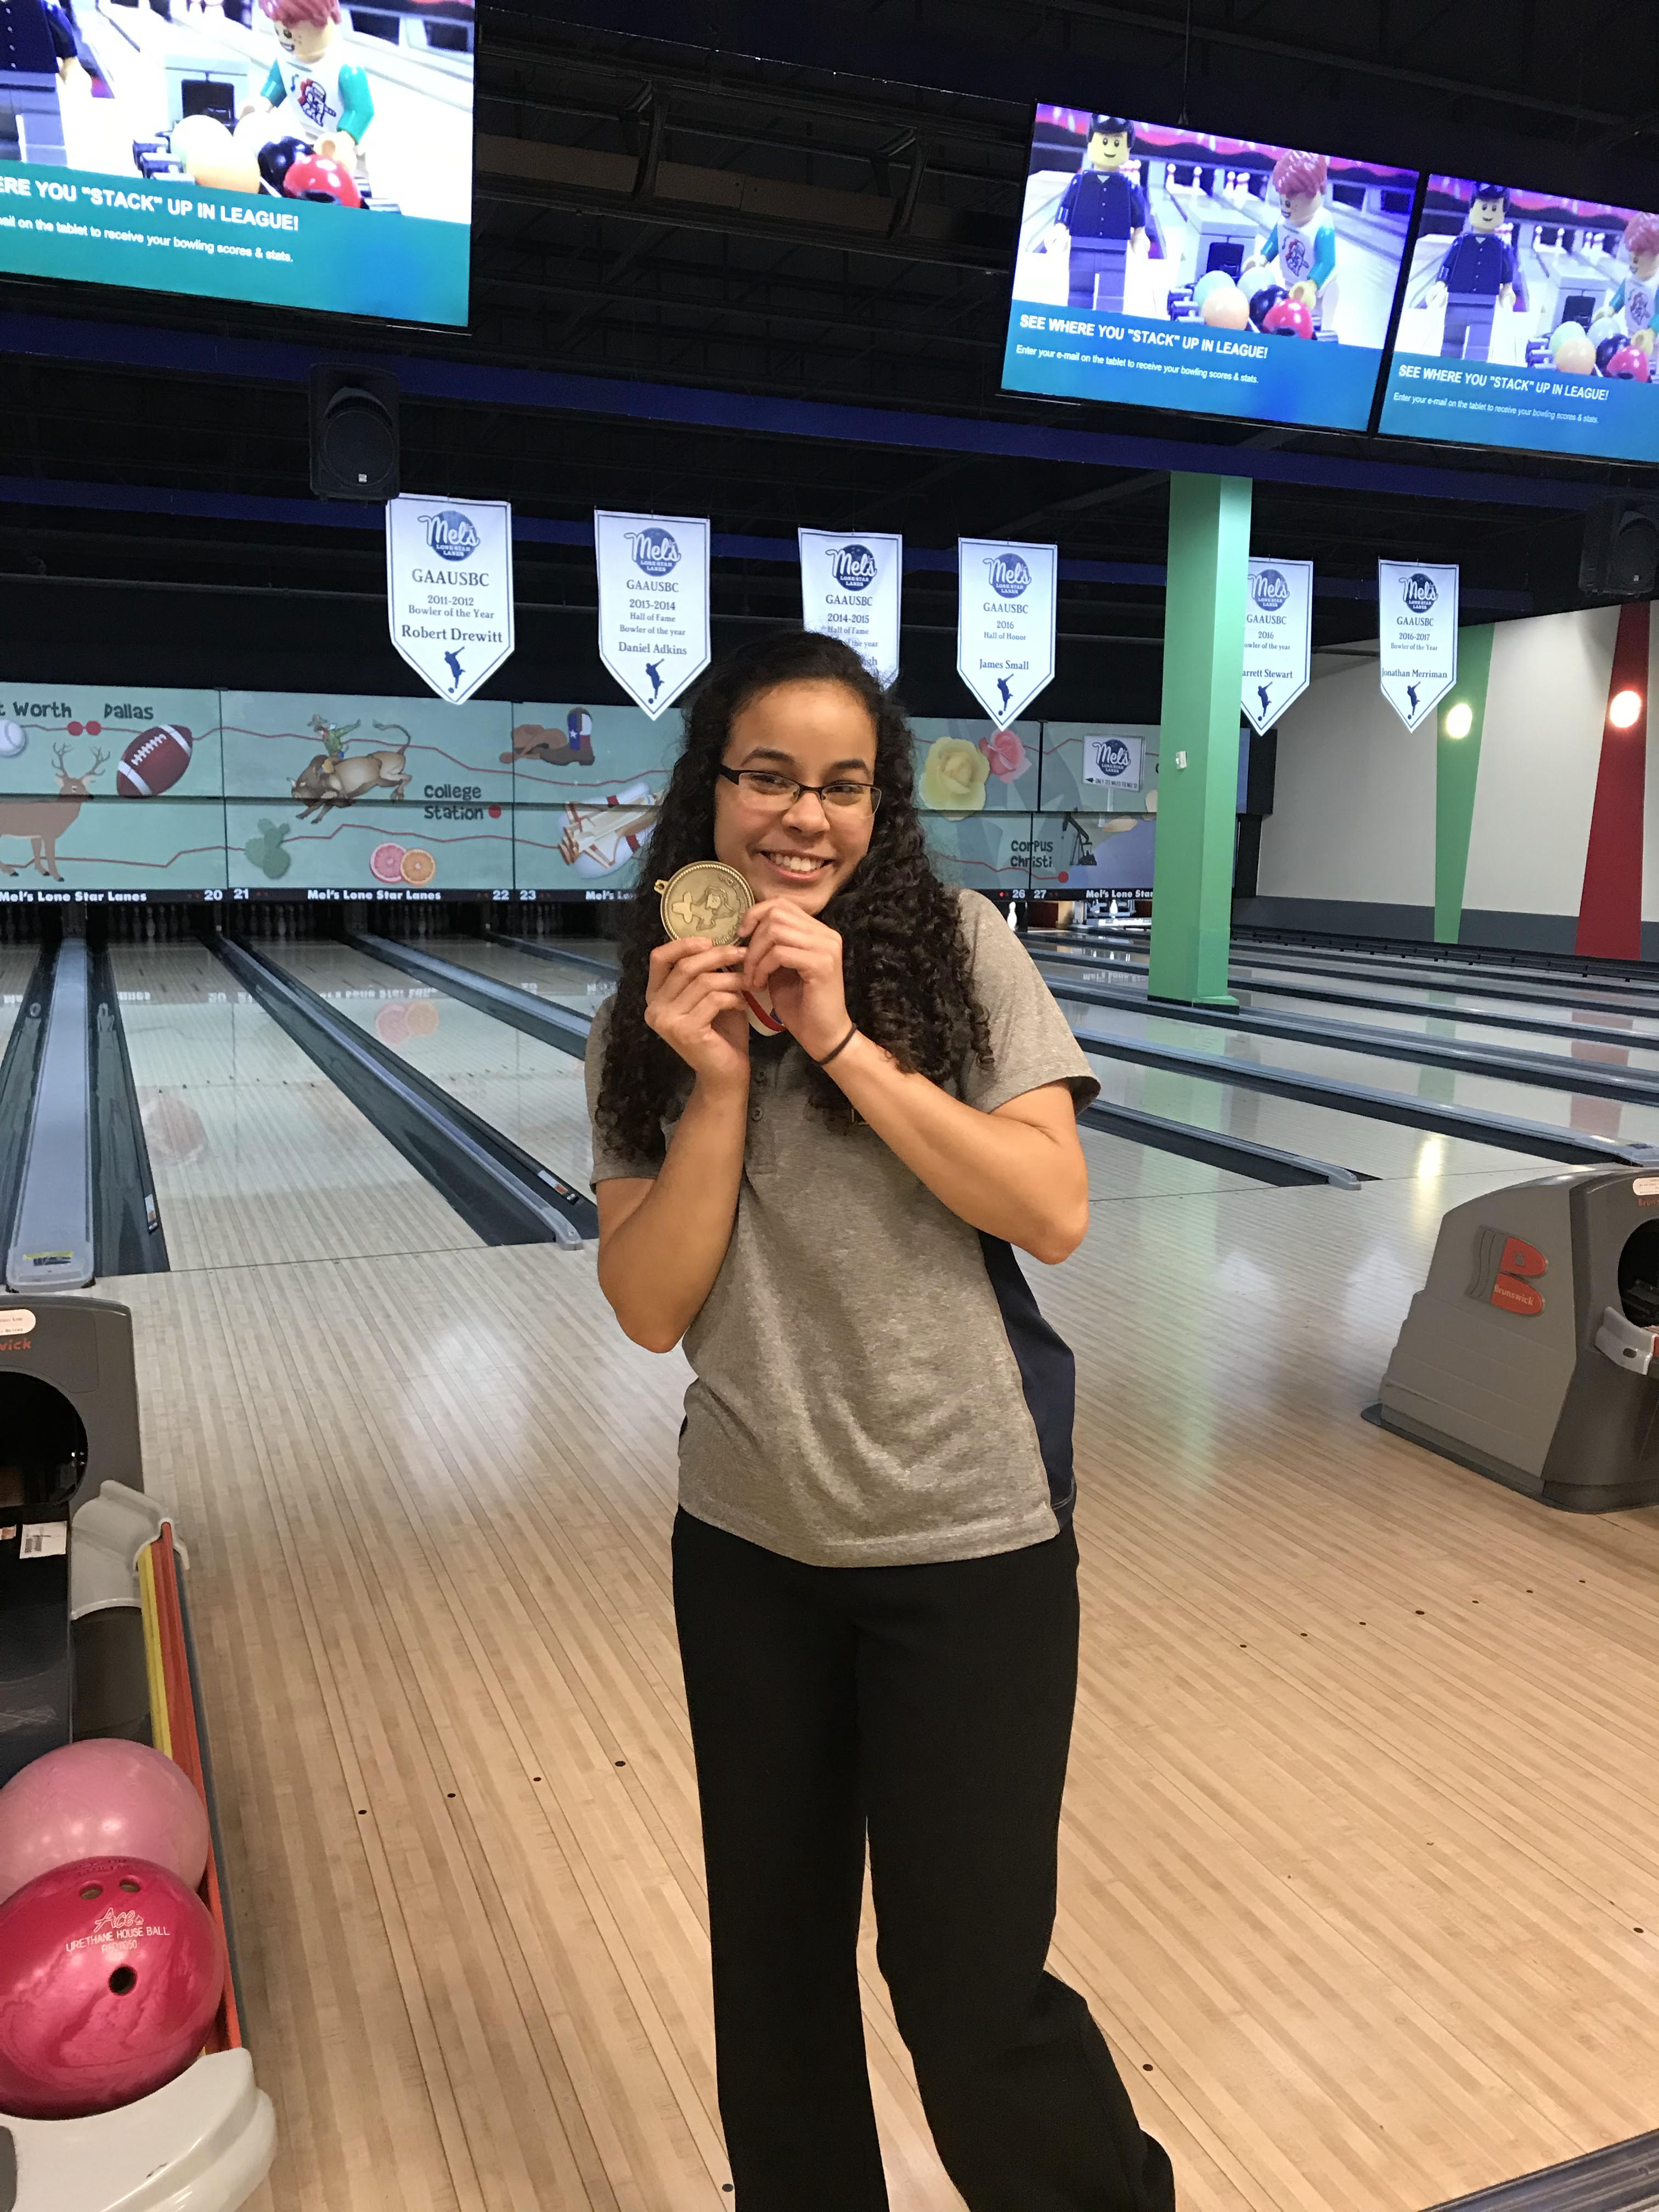 Stony Point Bowler Headed to State Championships